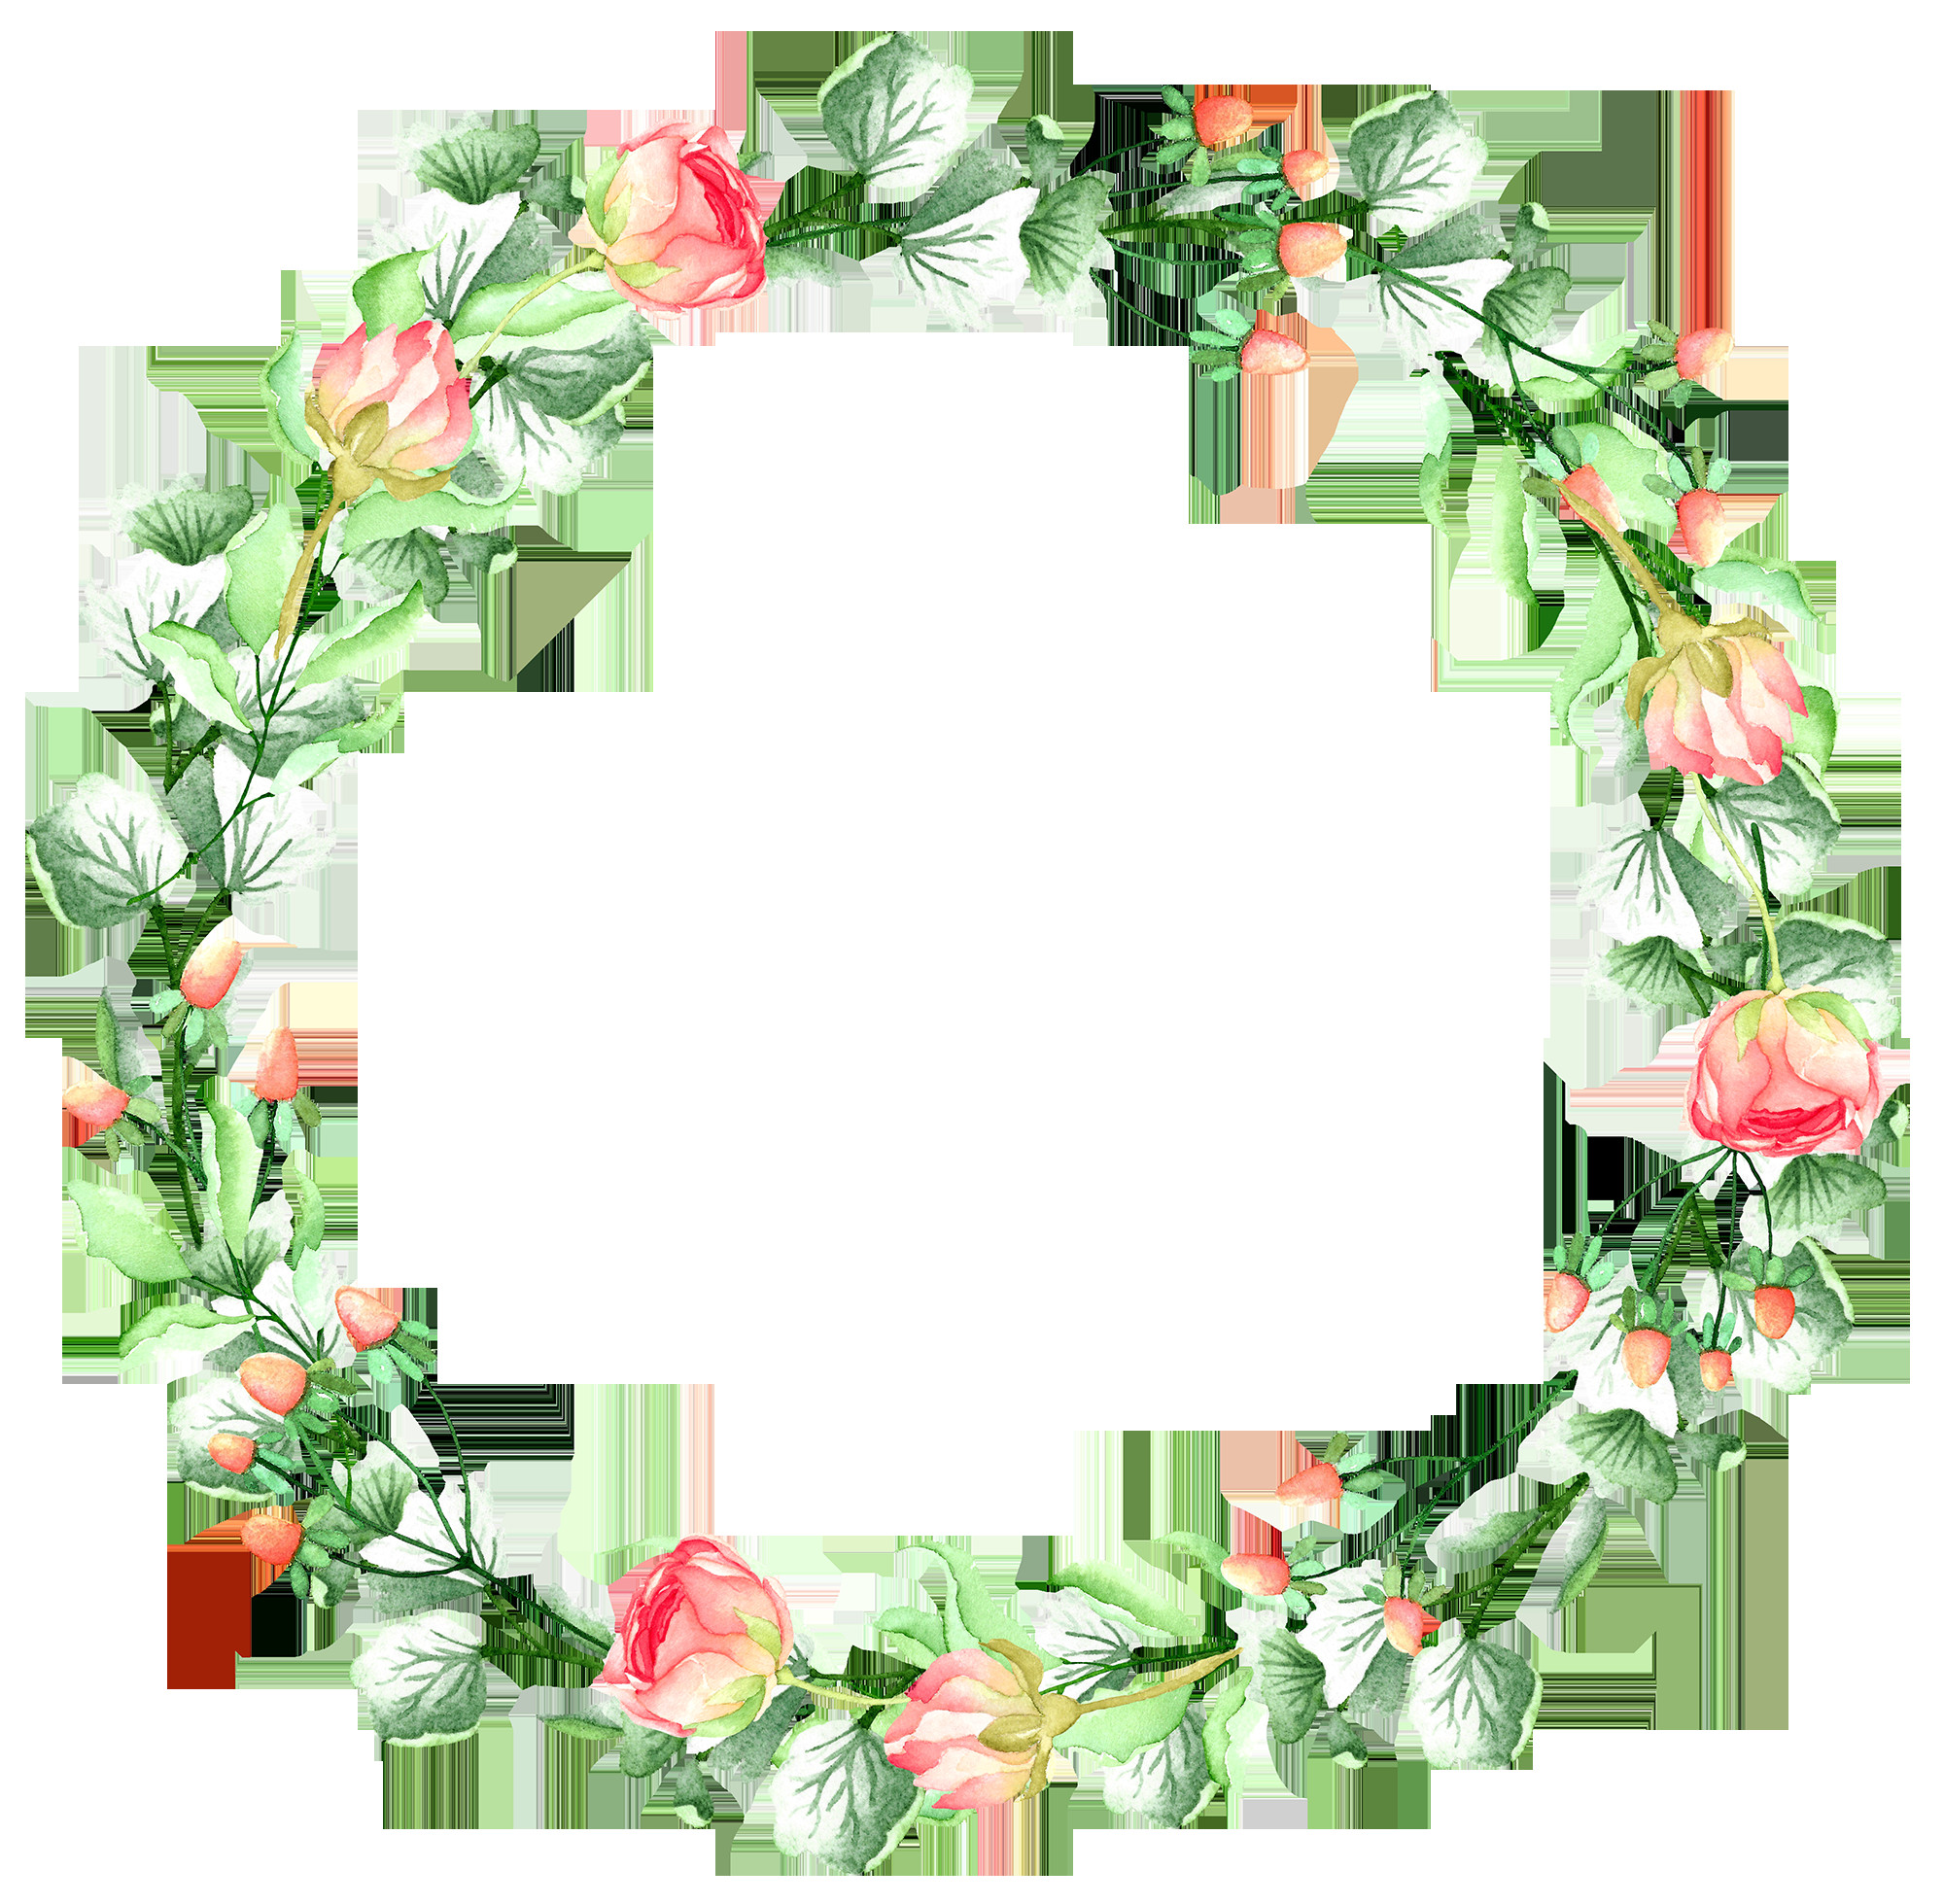 boarders and frames watercolor illustration floral watercolor art hub frame wreath